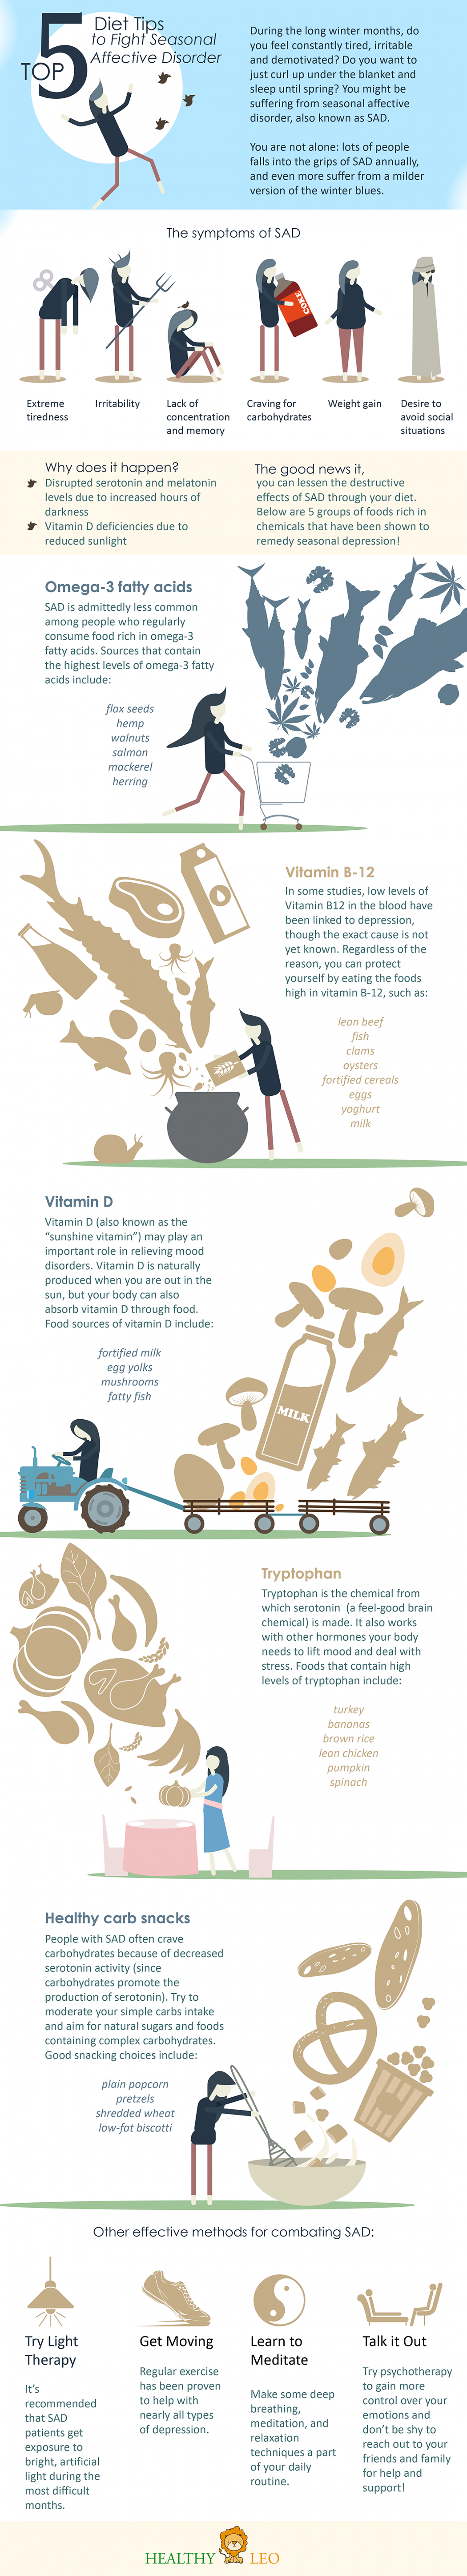 Top 5 Diet Tips to Fight Seasonal Affective Disorder Infographic